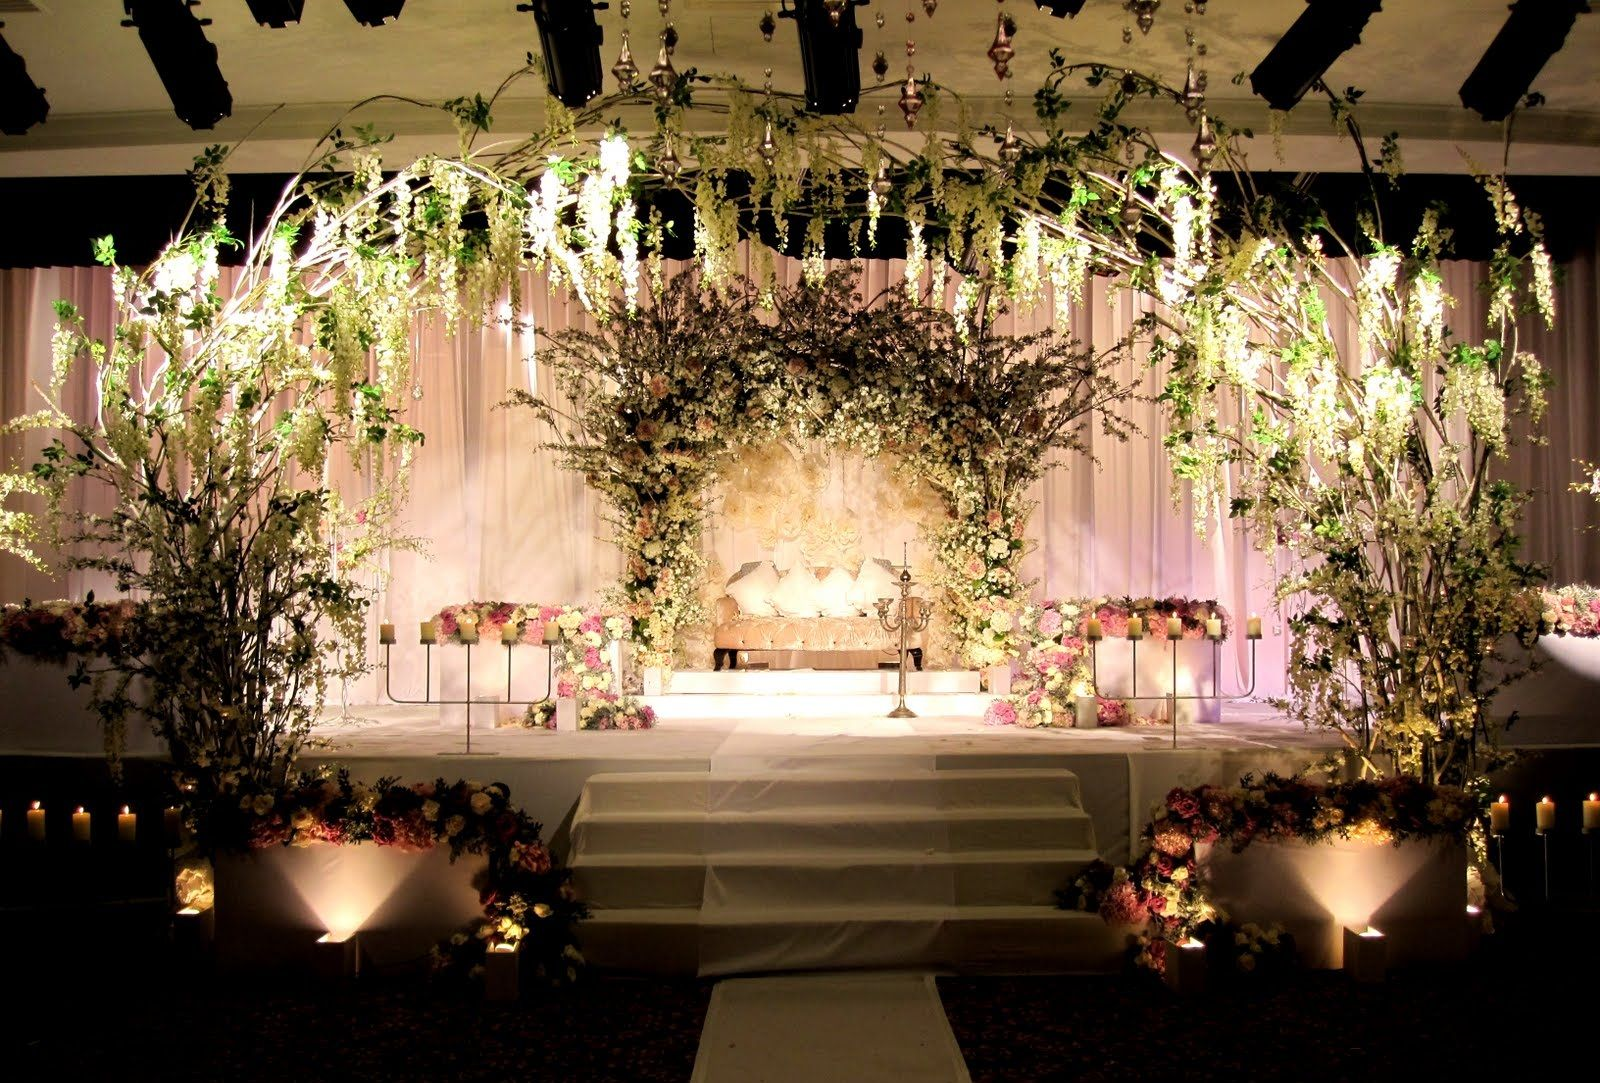 Wedding stage decoration with balloons  Pin by Tricia Favela on Our wedding  Pinterest  Weddings